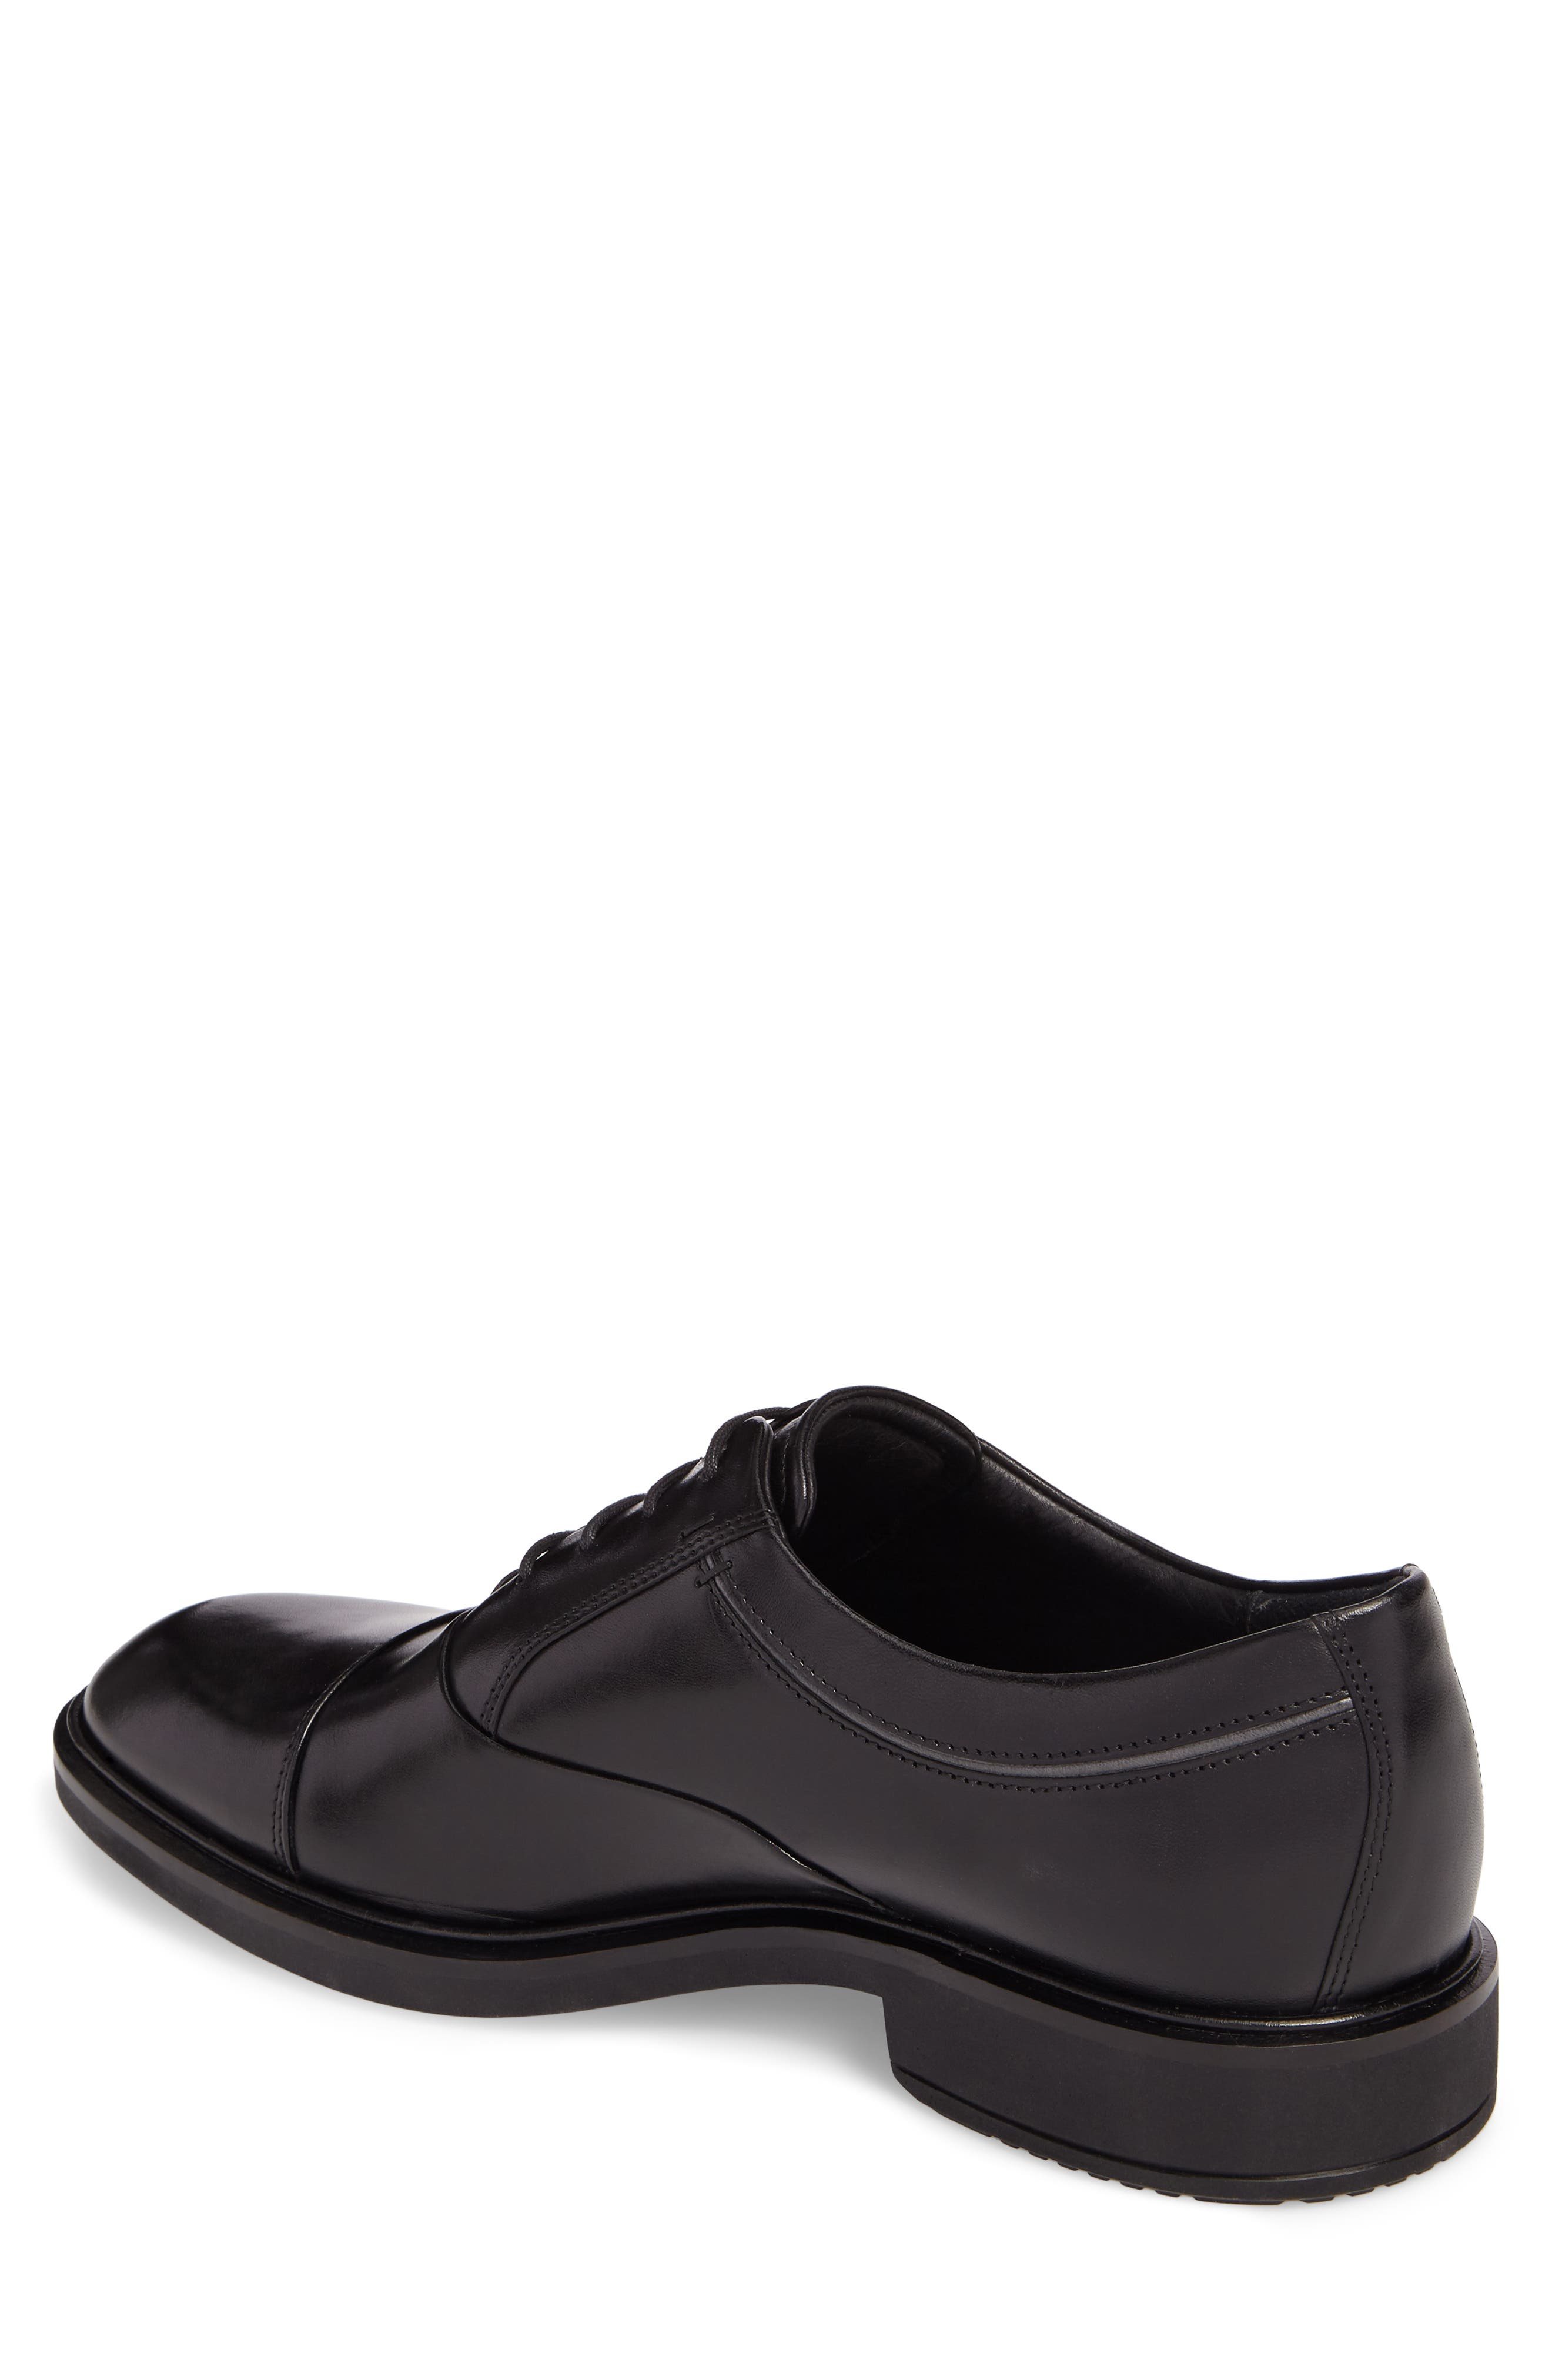 Vitrus II Cap Toe Oxford,                             Alternate thumbnail 2, color,                             BLACK LEATHER